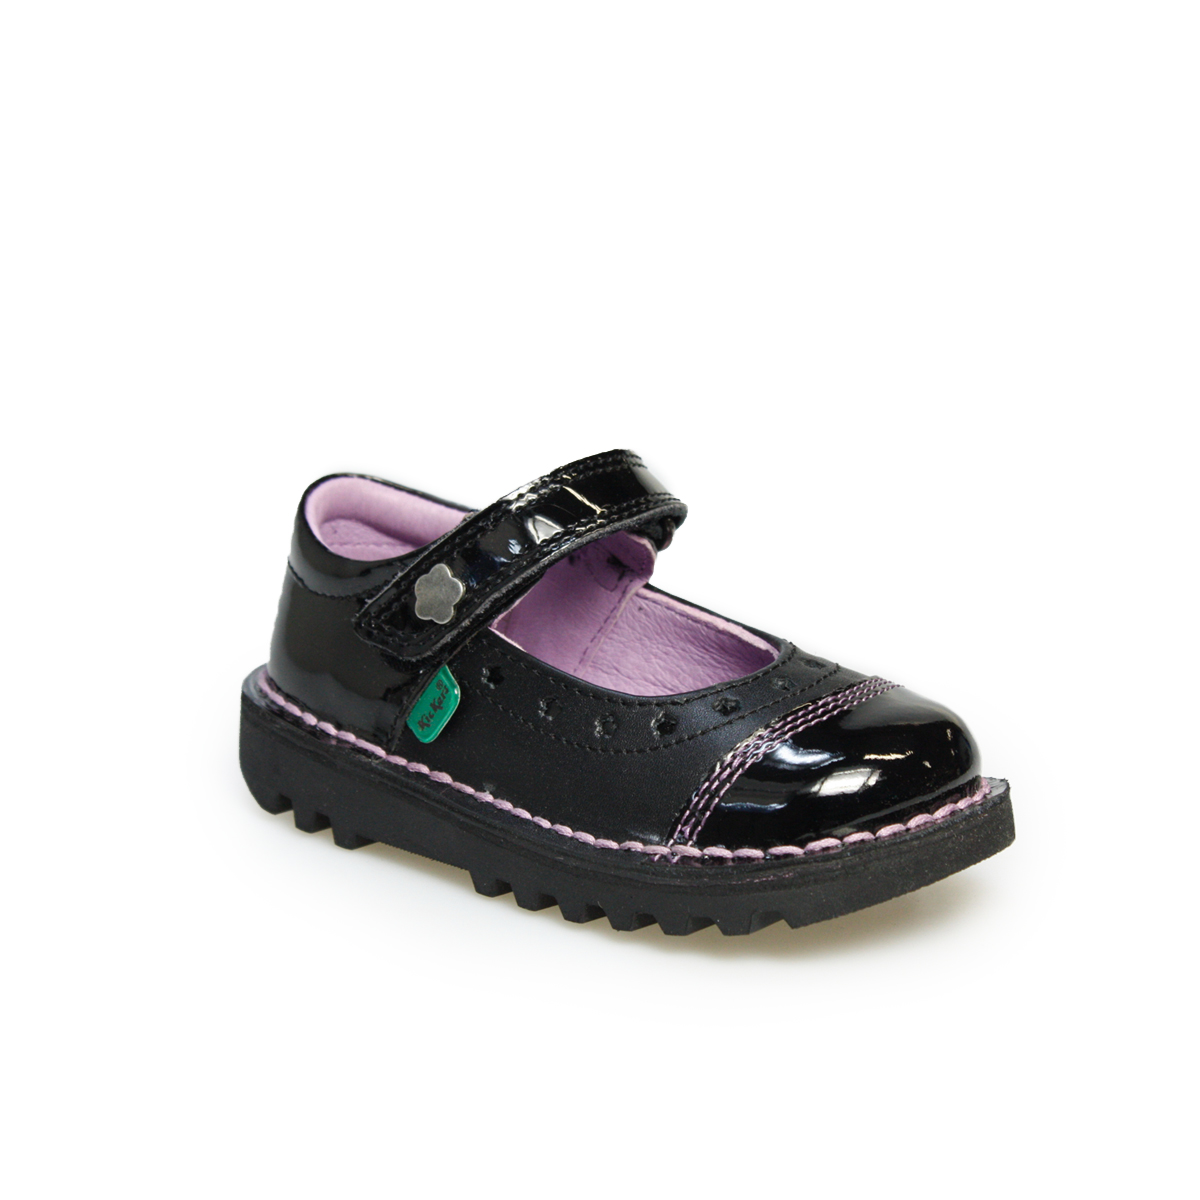 kickers mary jane fairy black leather infants girls kids